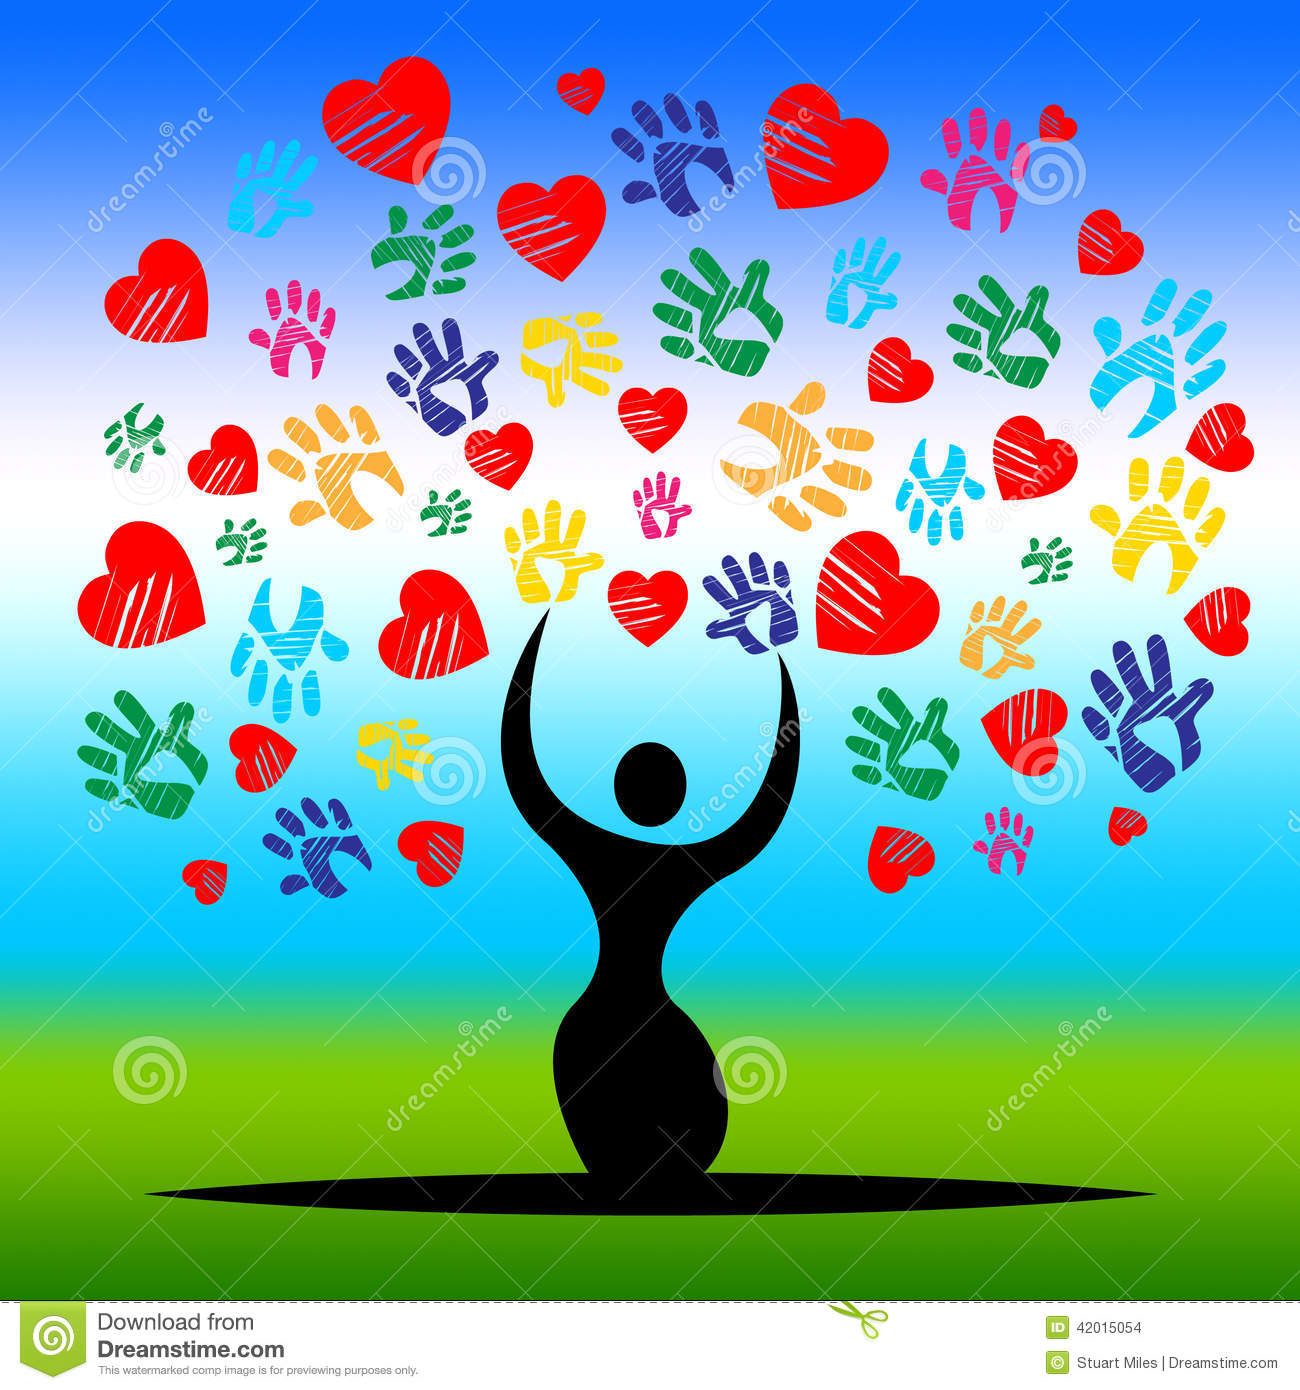 Handprints Tree Represents Valentine S Day And Artwork Stock